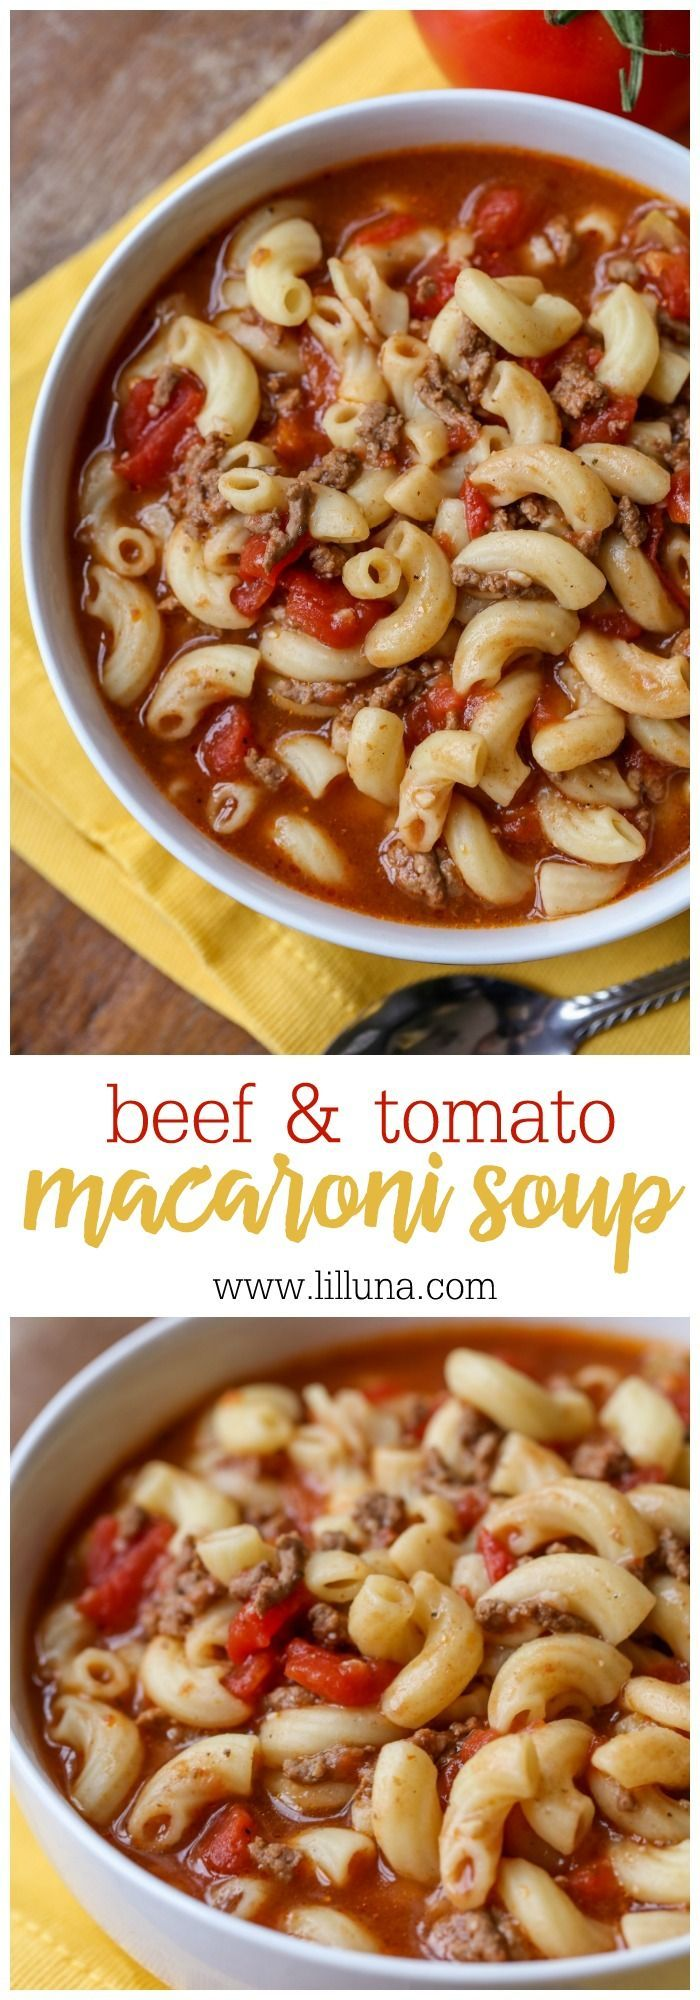 Beef & Tomato Macaroni Soup – a hearty soup full of hamburger, tomatoes, macaroni, and more! Worcestershire sauce combined with brown sugar makes for a perfectly sweet and savory flavor that is irresistible!!